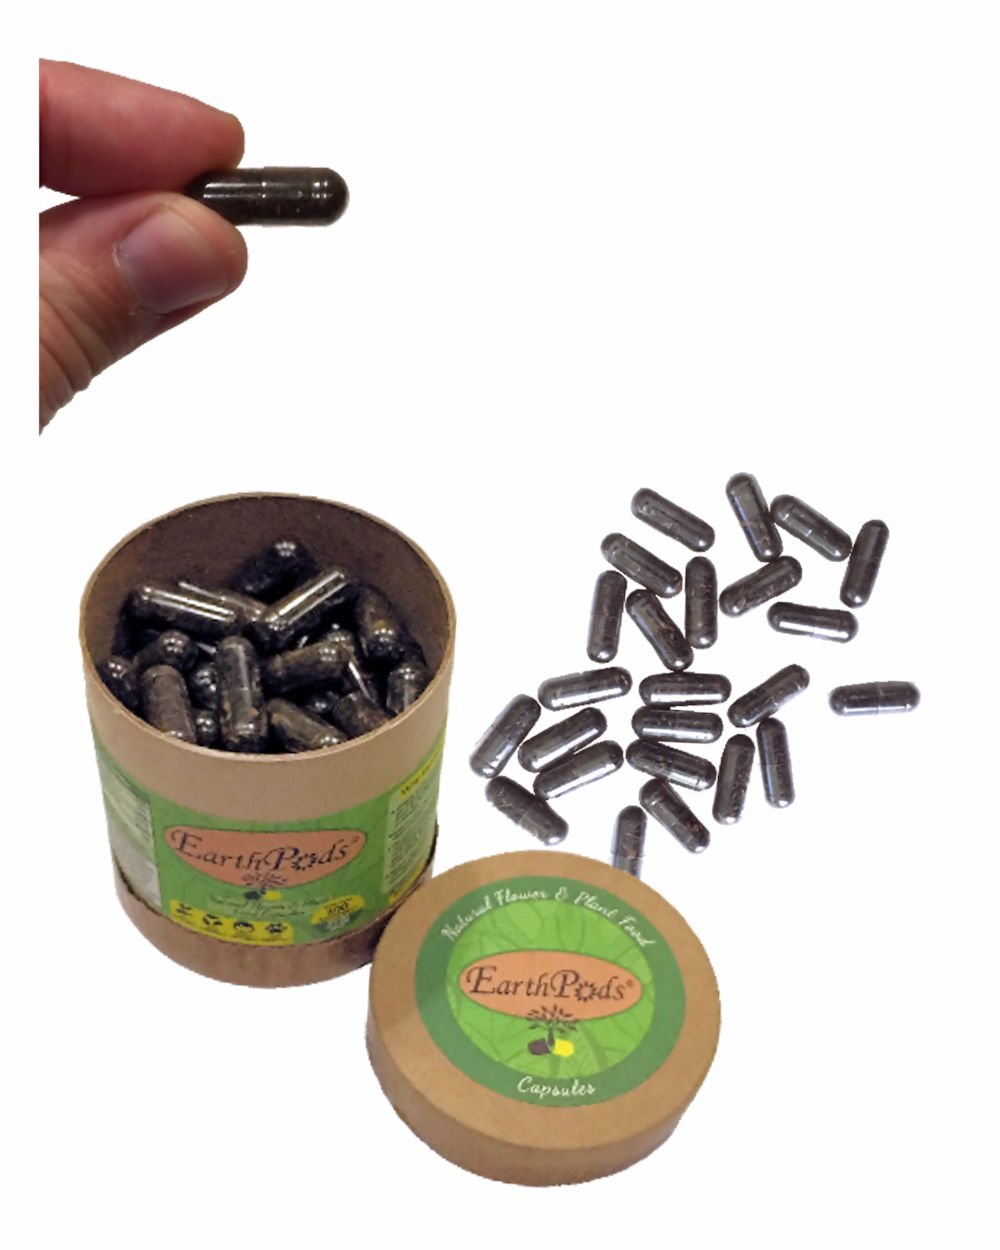 EarthPods HERB + VEGETABLE Bio Organic Fertilizer Capsules (100 Spikes, NO UREA, Feeds 10 Plants for 1 Year, Ecofriendly Plant Food for Culinary Kitchen Herbs, Vegetables & Medical Houseplants) by Earthworm Technologies (Image #3)